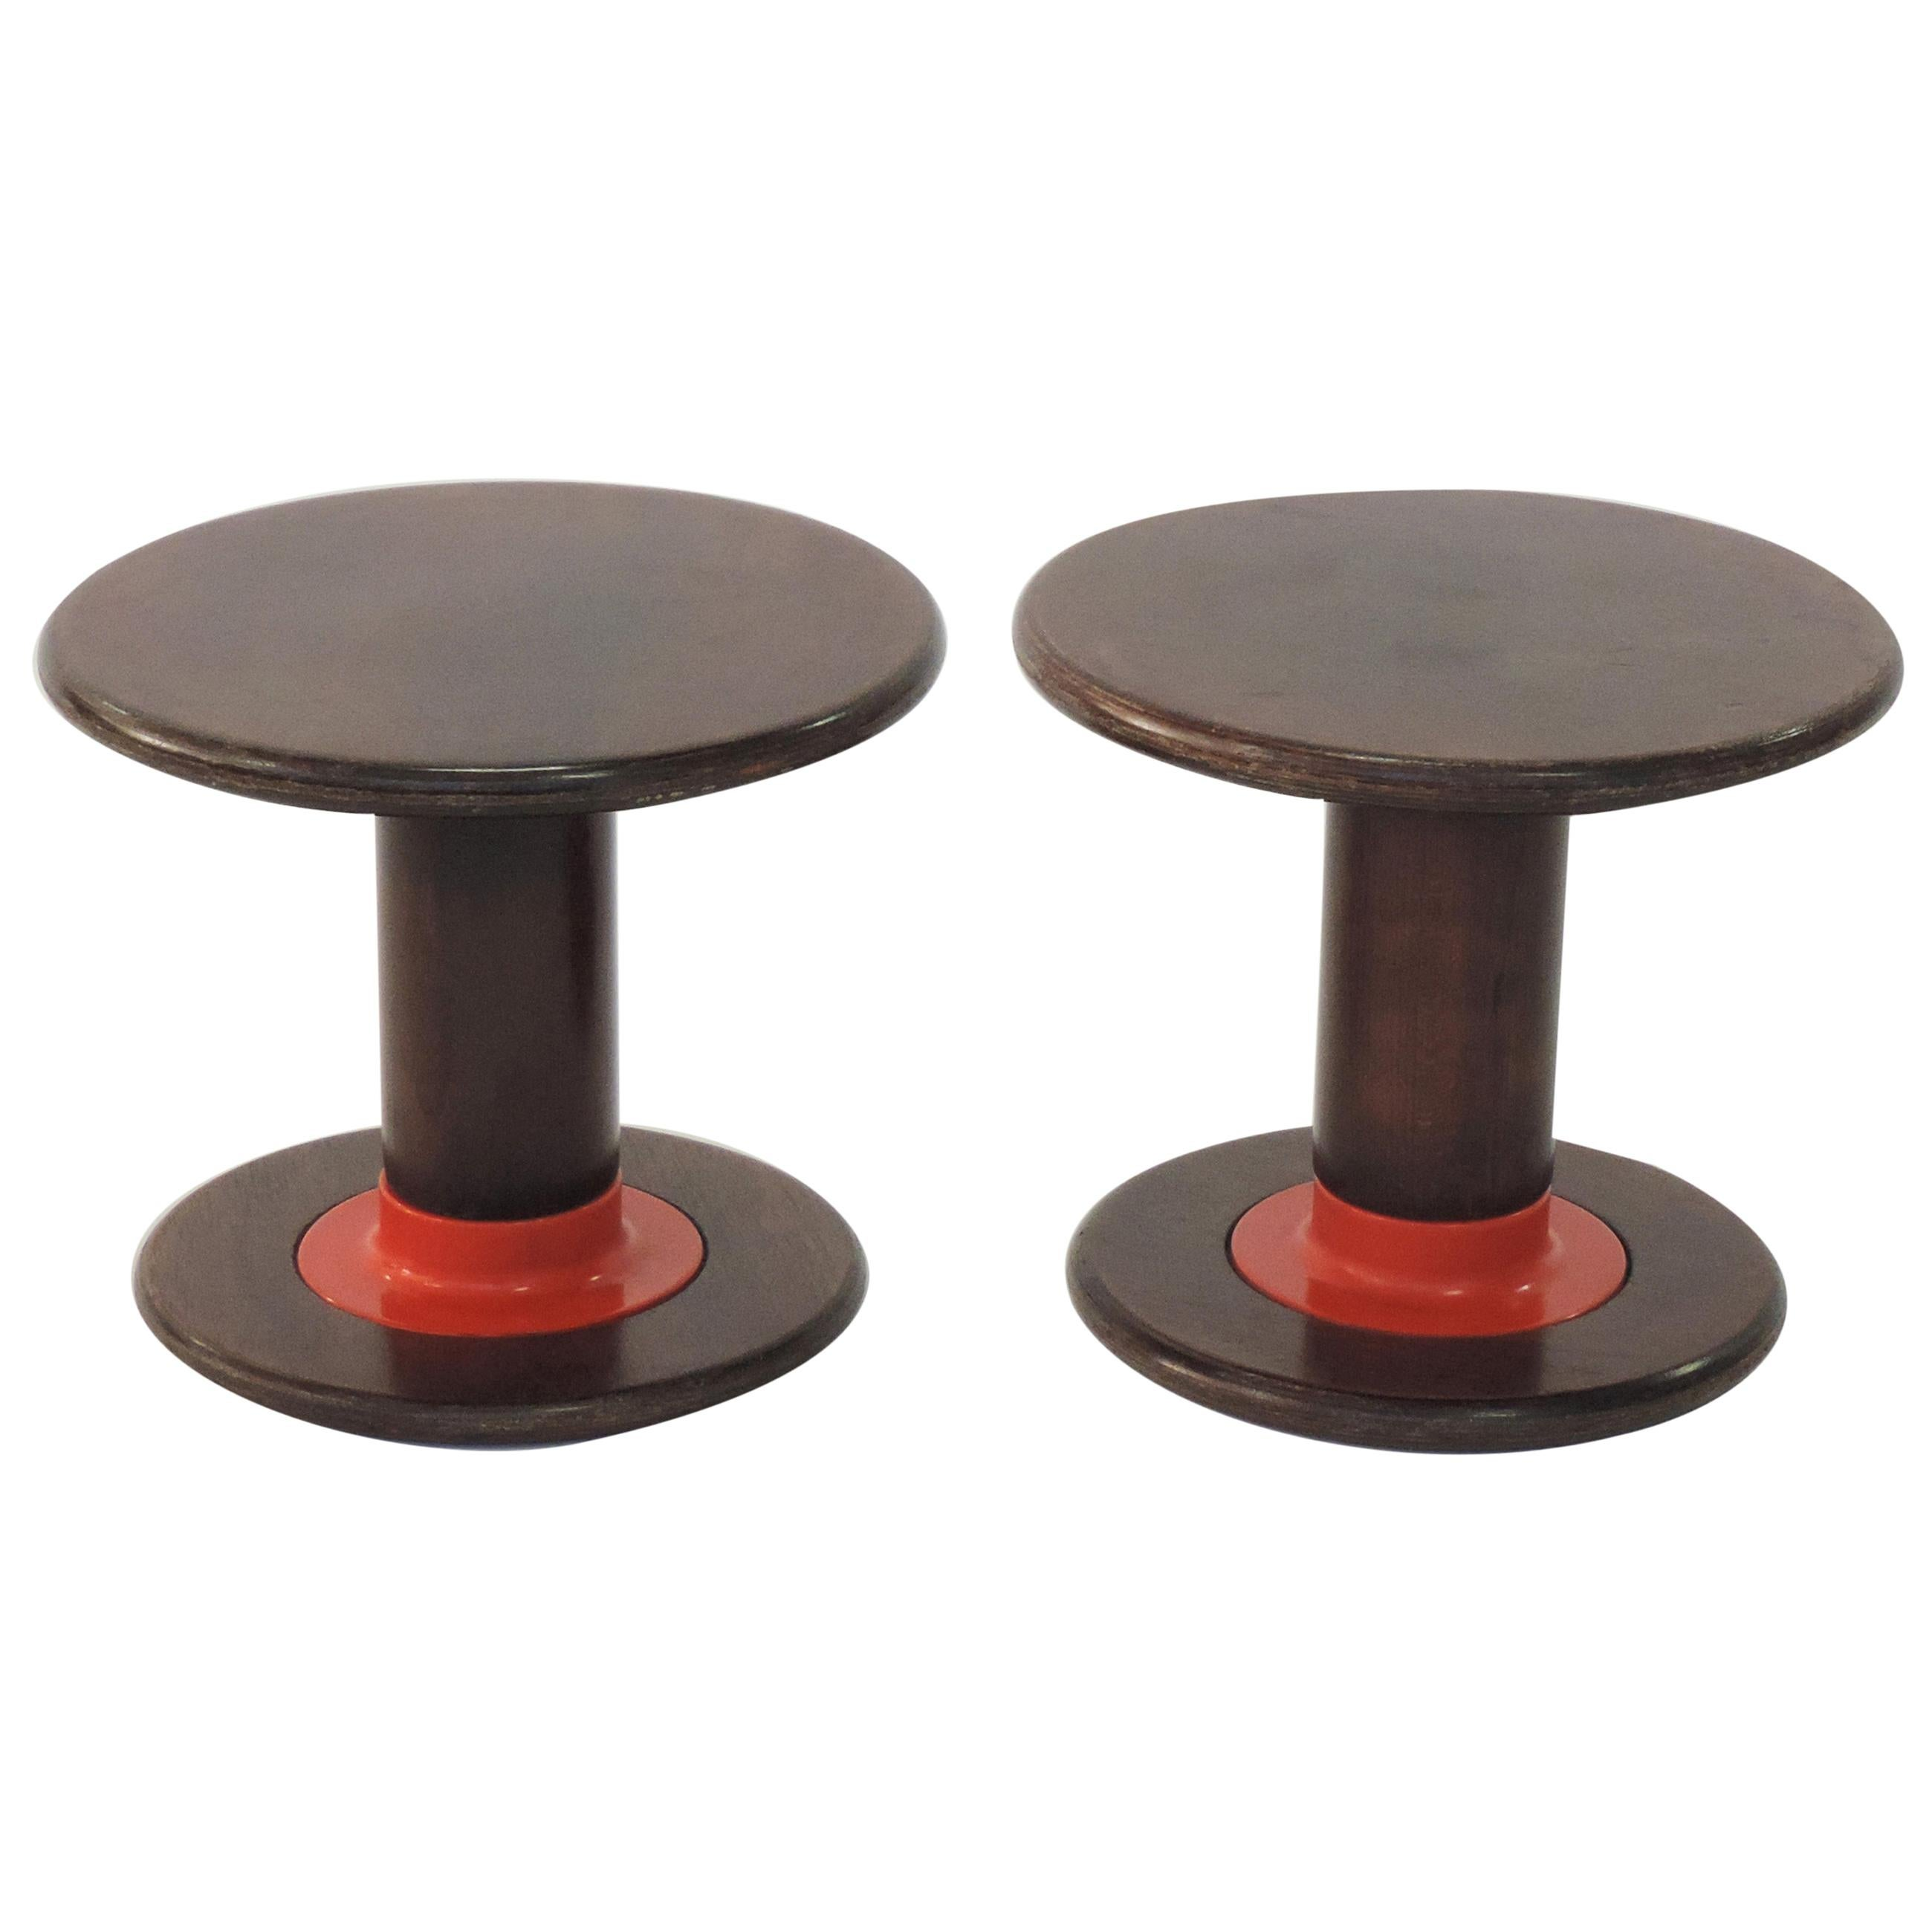 Ettore Sottsass Jr. Pair of Rocchettone Side Tables for Poltronova, Italy, 1964